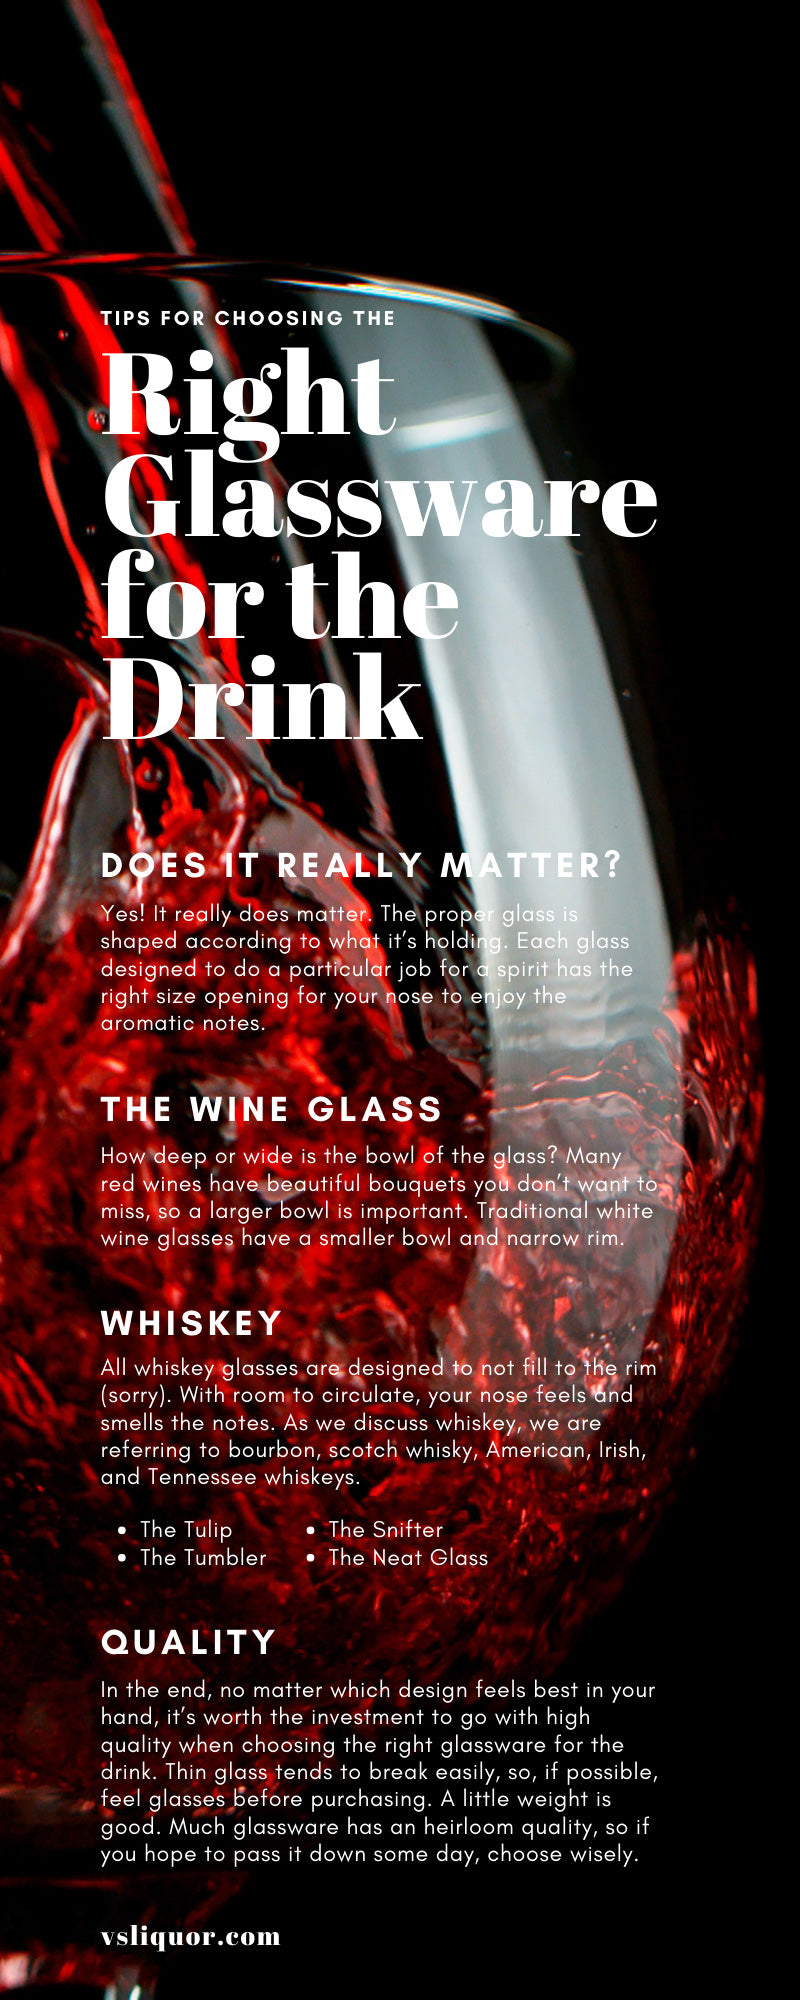 Tips for Choosing the Right Glassware for the Drink